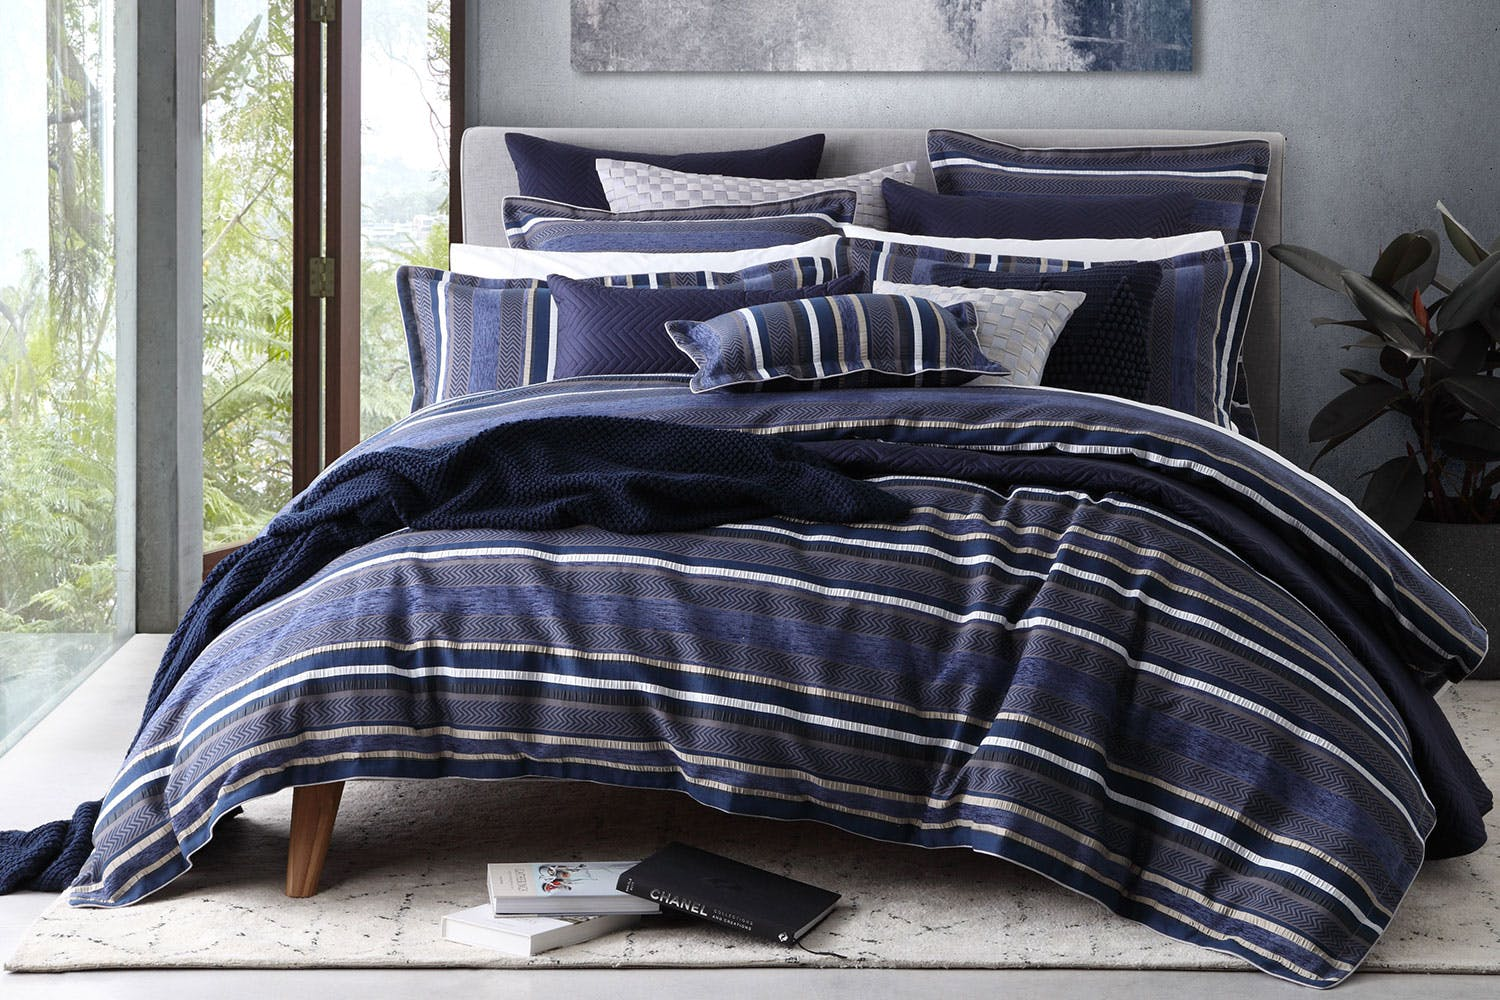 double bed buy linen tailor cover covers hilfiger tommy bedroom next amara colour products duvet block navy previous